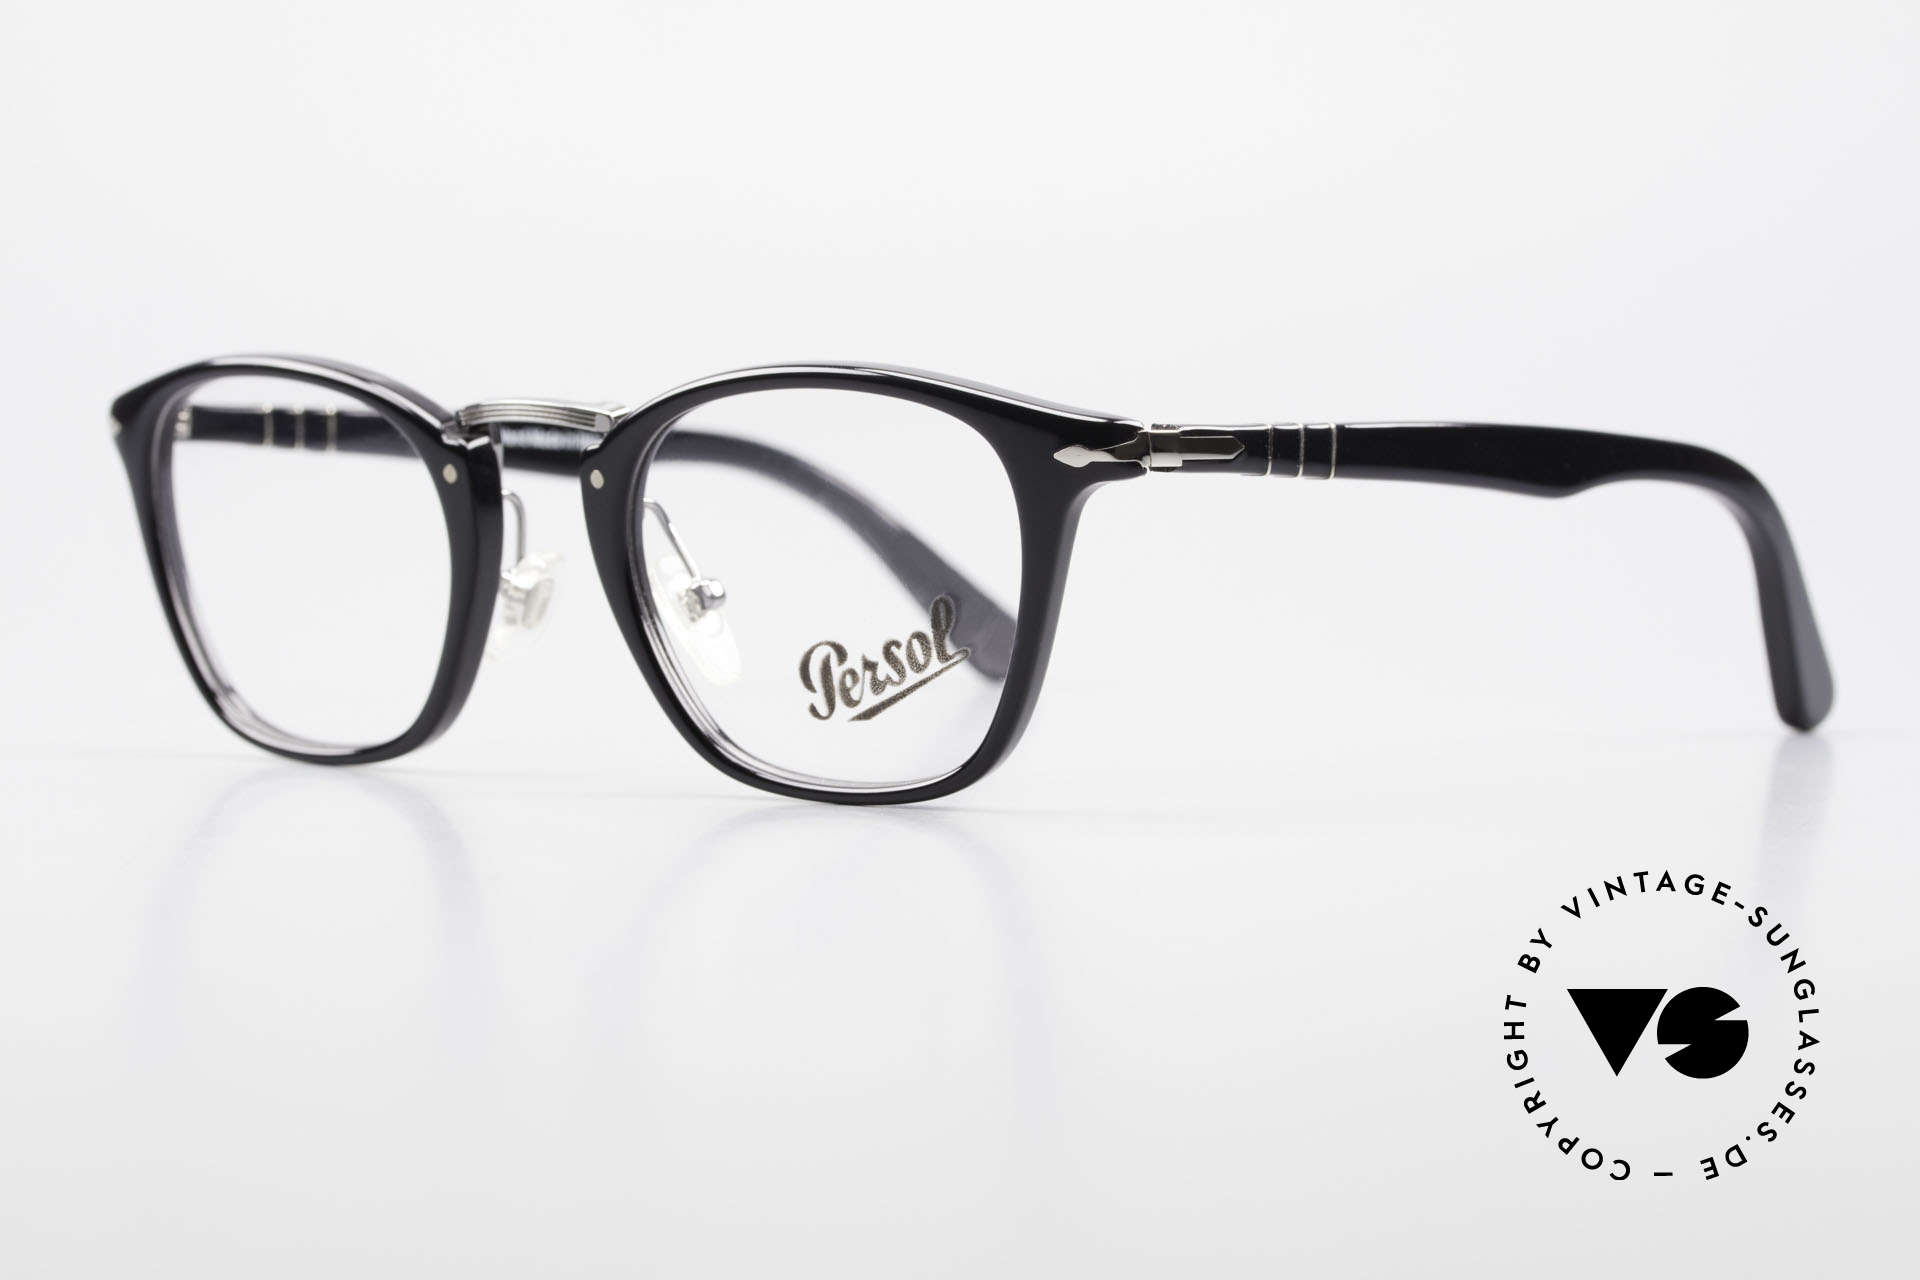 Persol 3109 Typewriter Edition Eyewear, unworn (like all our classic PERSOL eyeglasses), Made for Men and Women